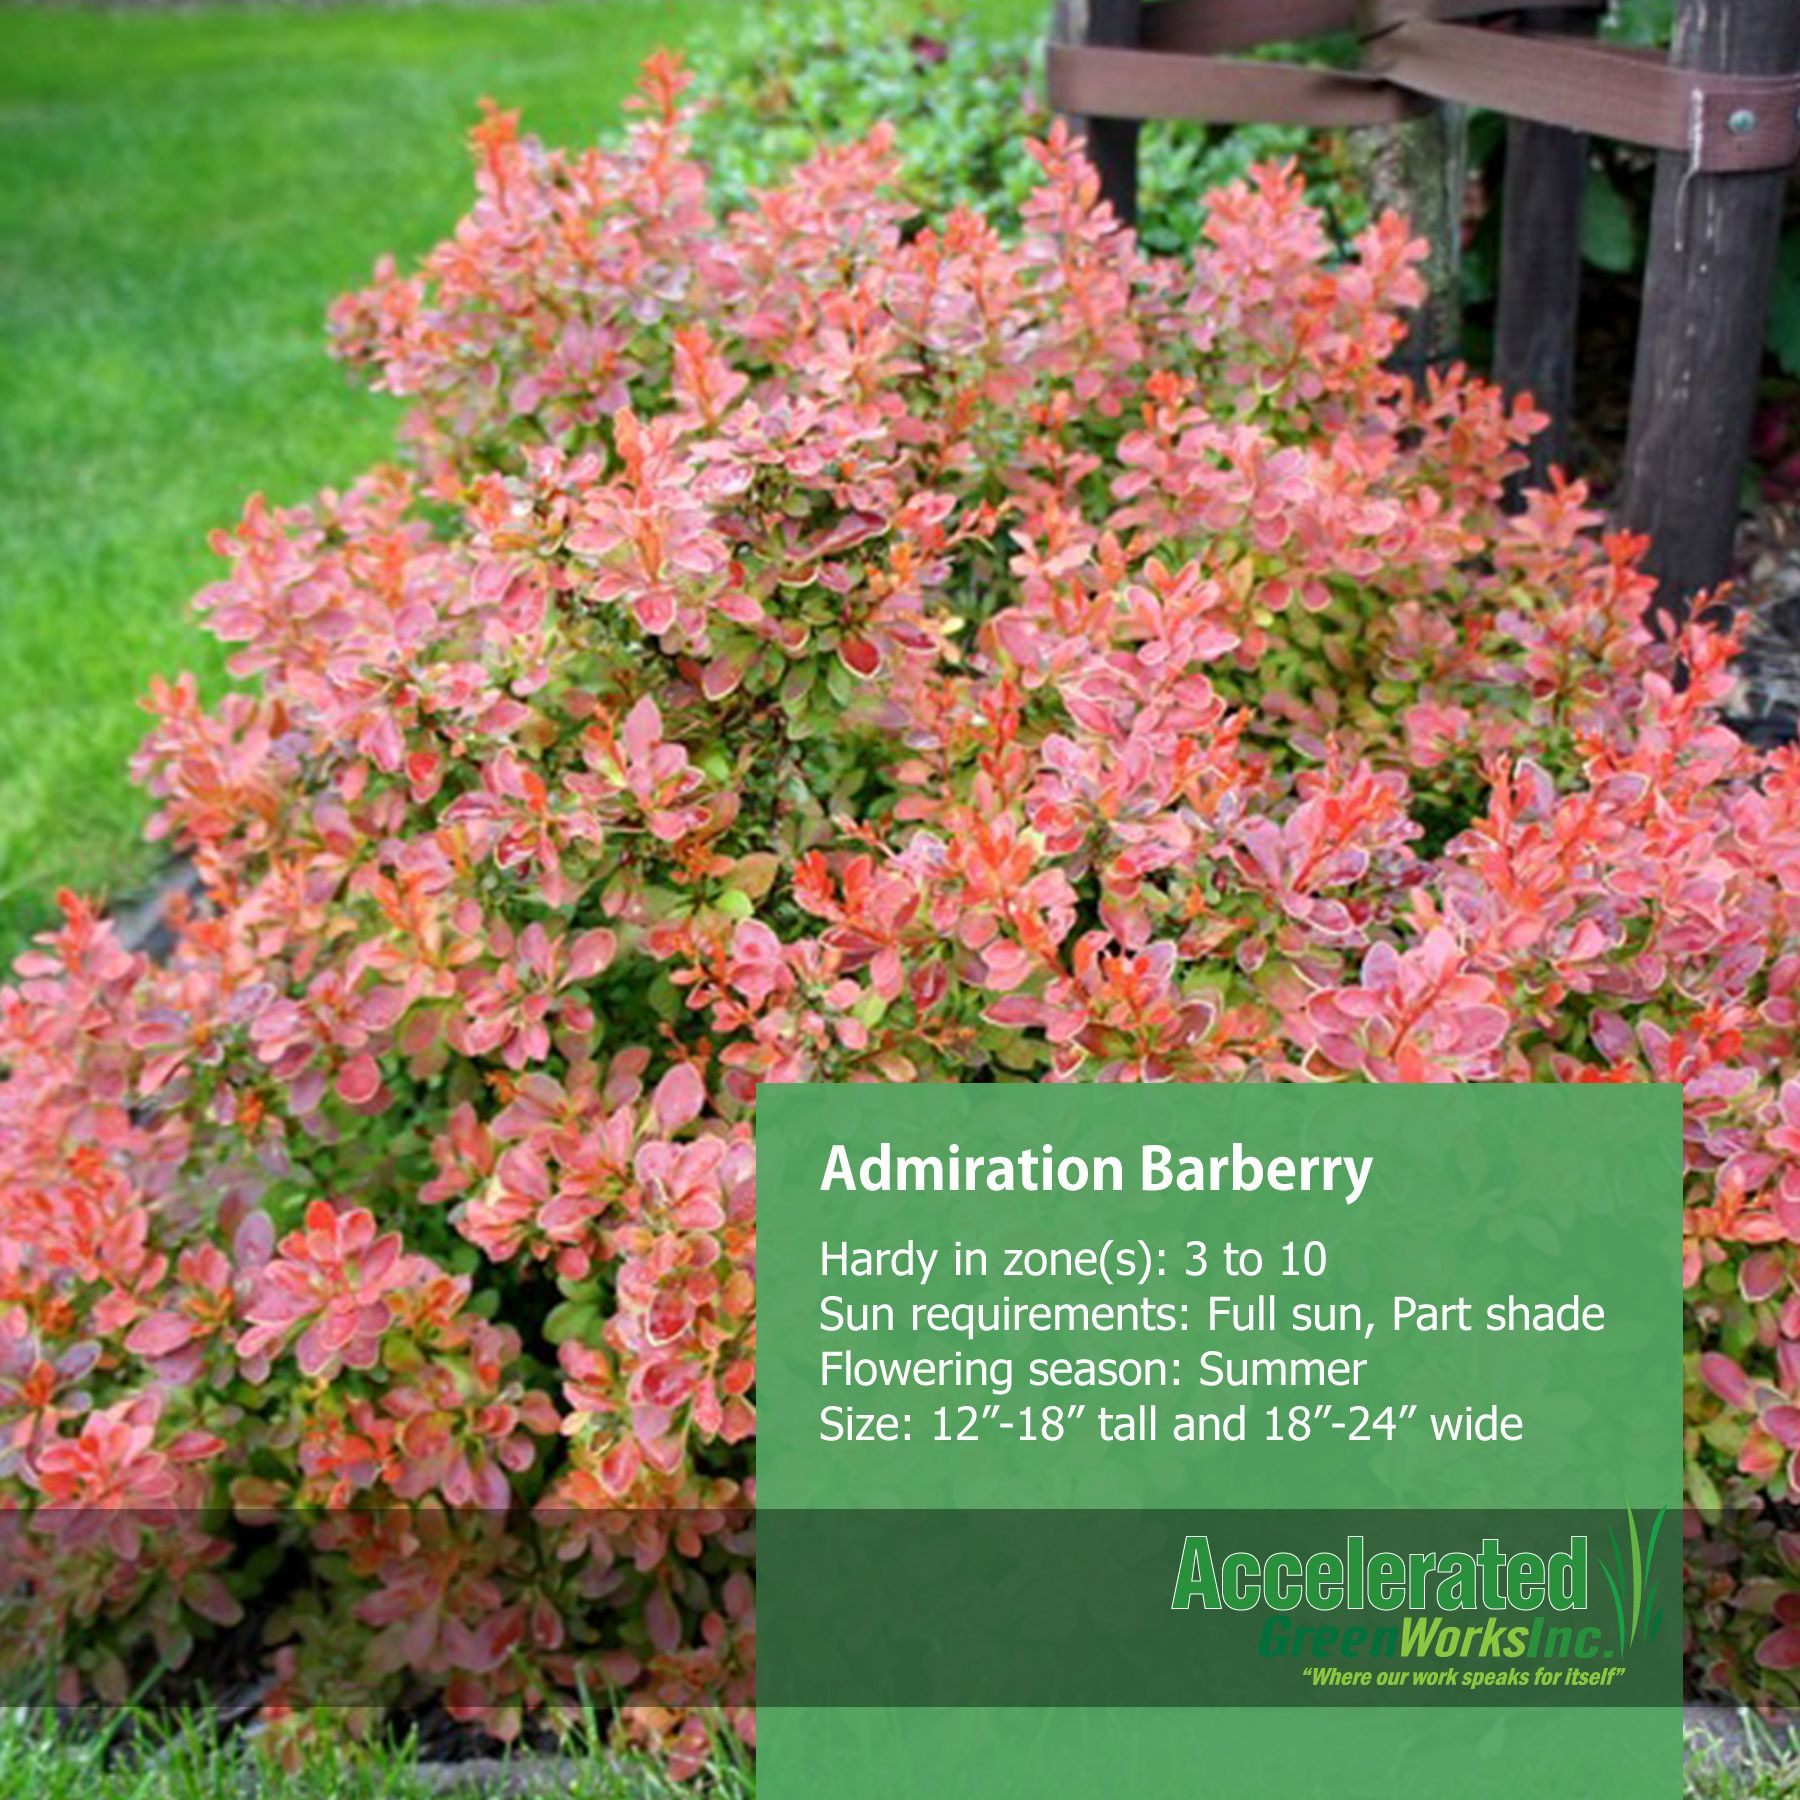 Admiration Barberry Anese Garden Shrubs Yahoo Images Outdoor Ideas Image Search